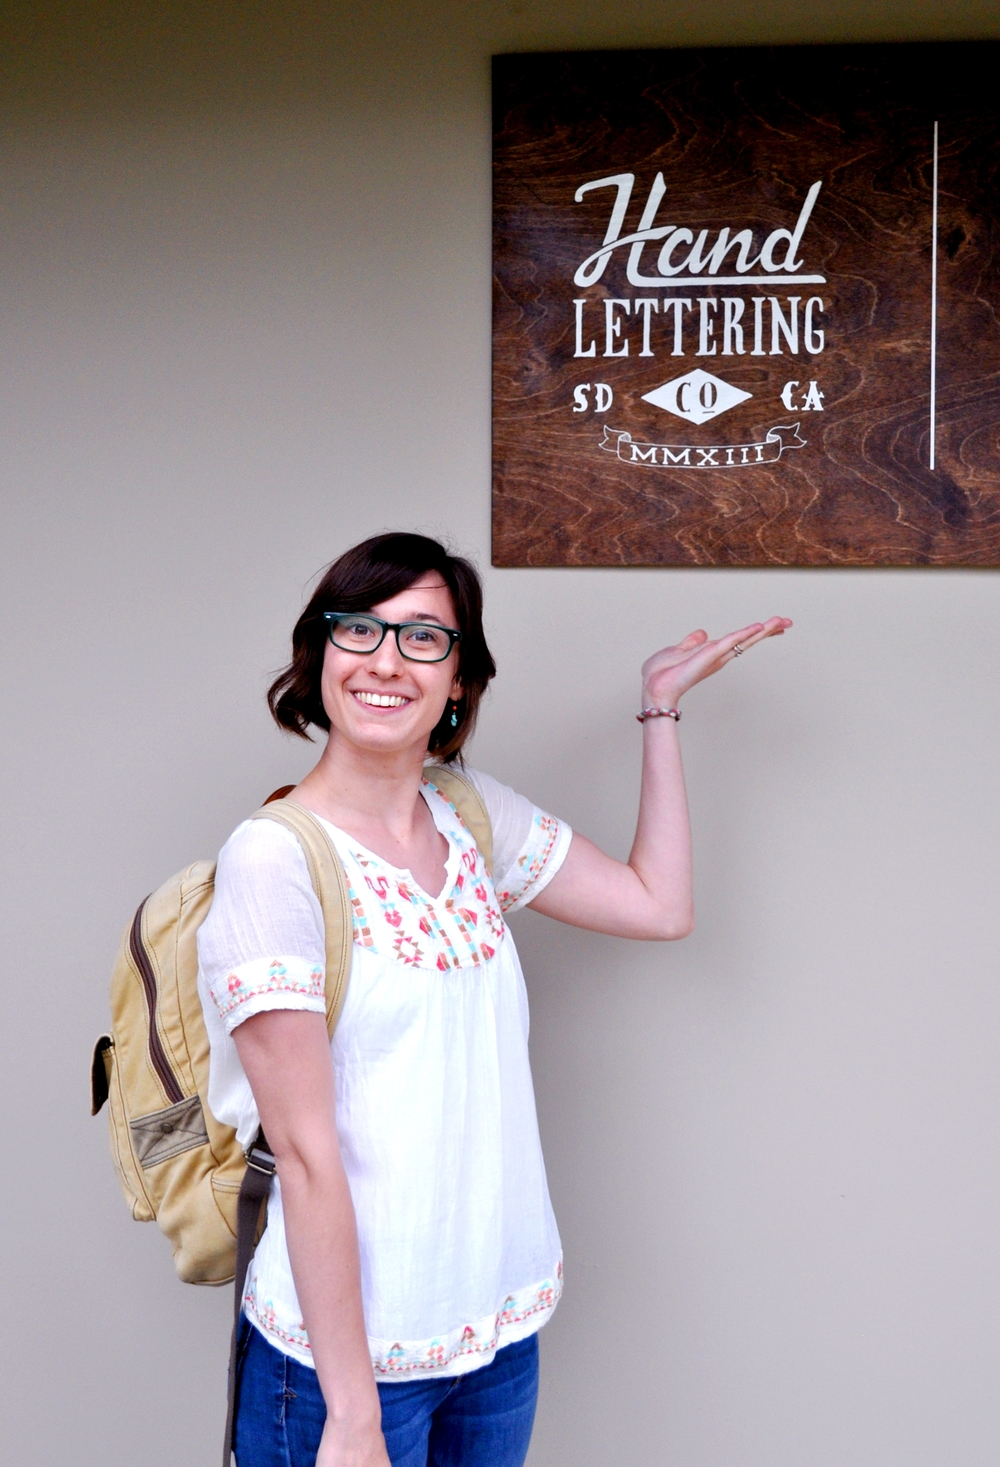 The HandLettering Co. studio sign!